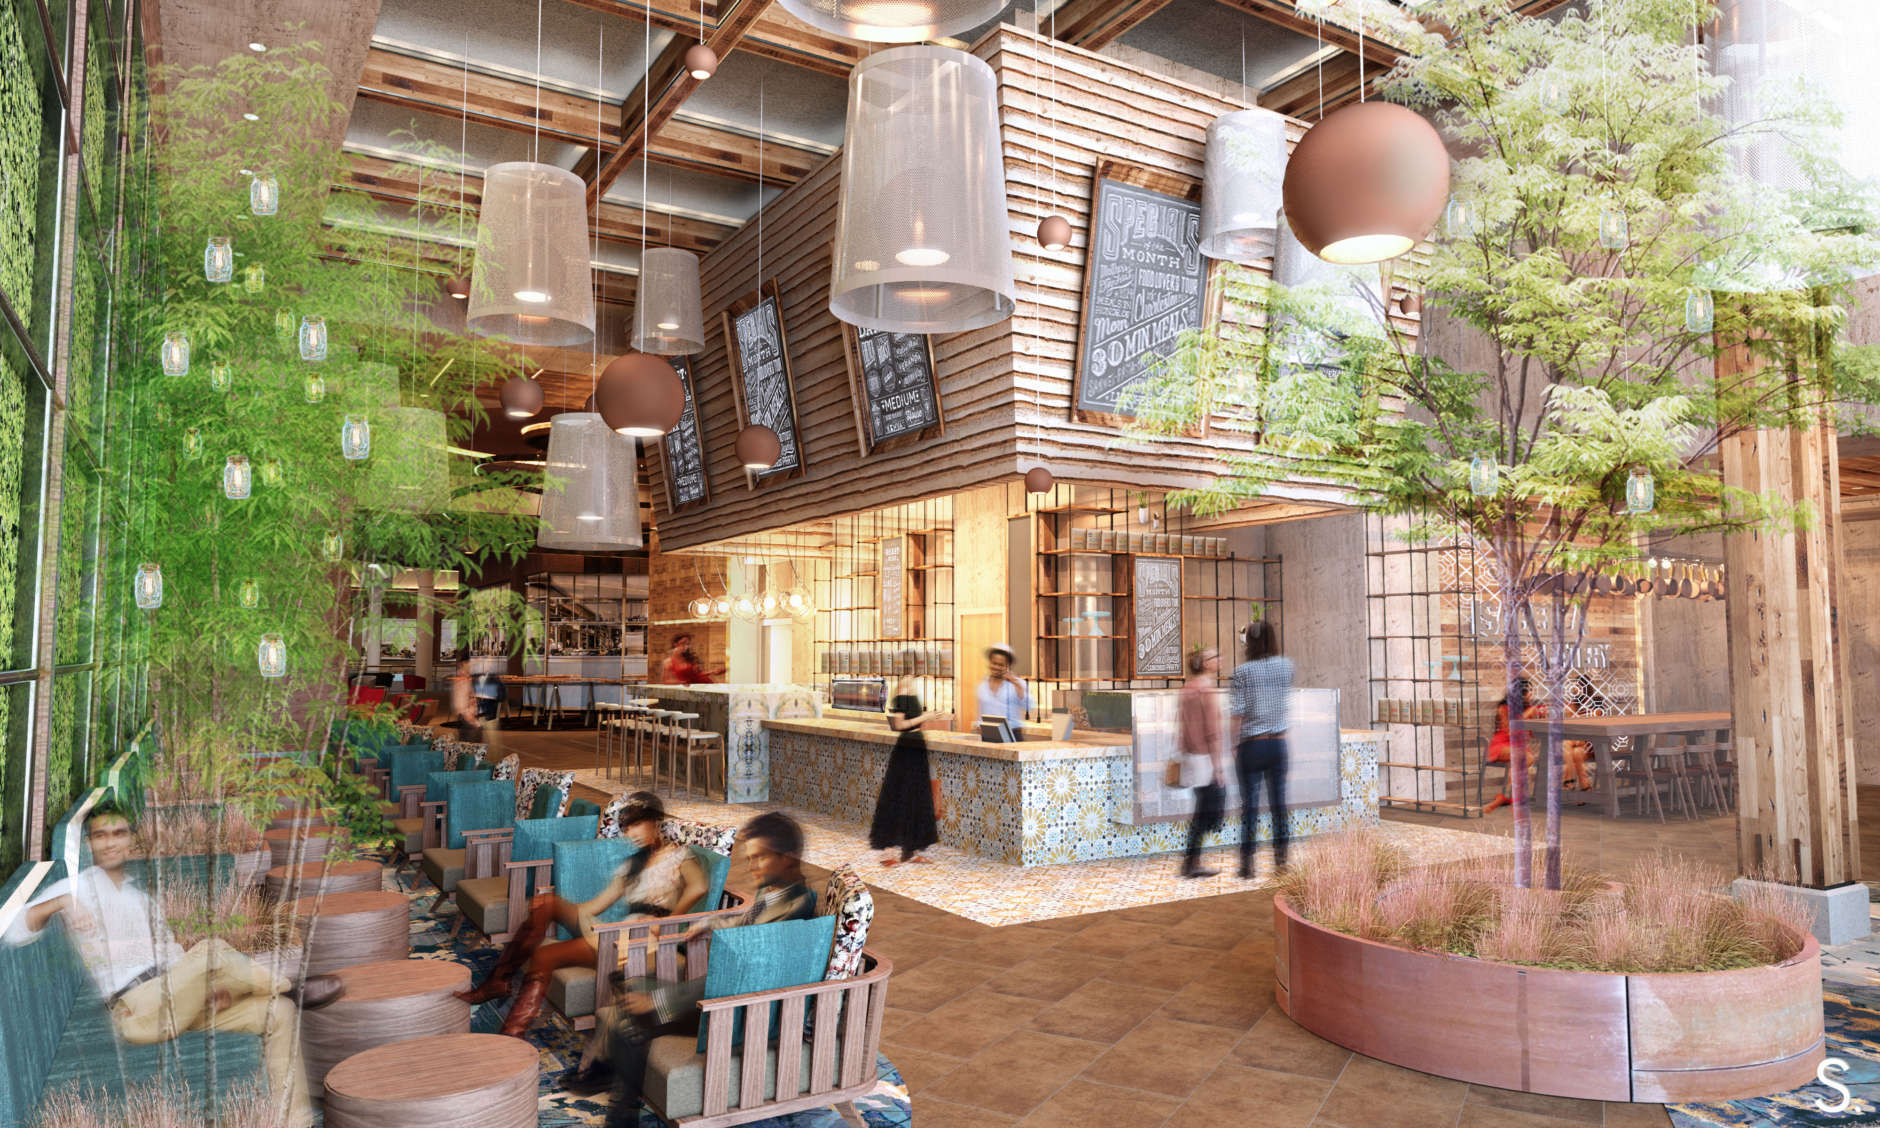 Non-Fiction Coffee, a new style of coffeehouse lounge, will offer artisan beans, pastries, fresh juices and sandwiches. (Rendering courtesy Mike Isabella Concepts/Streetsense)